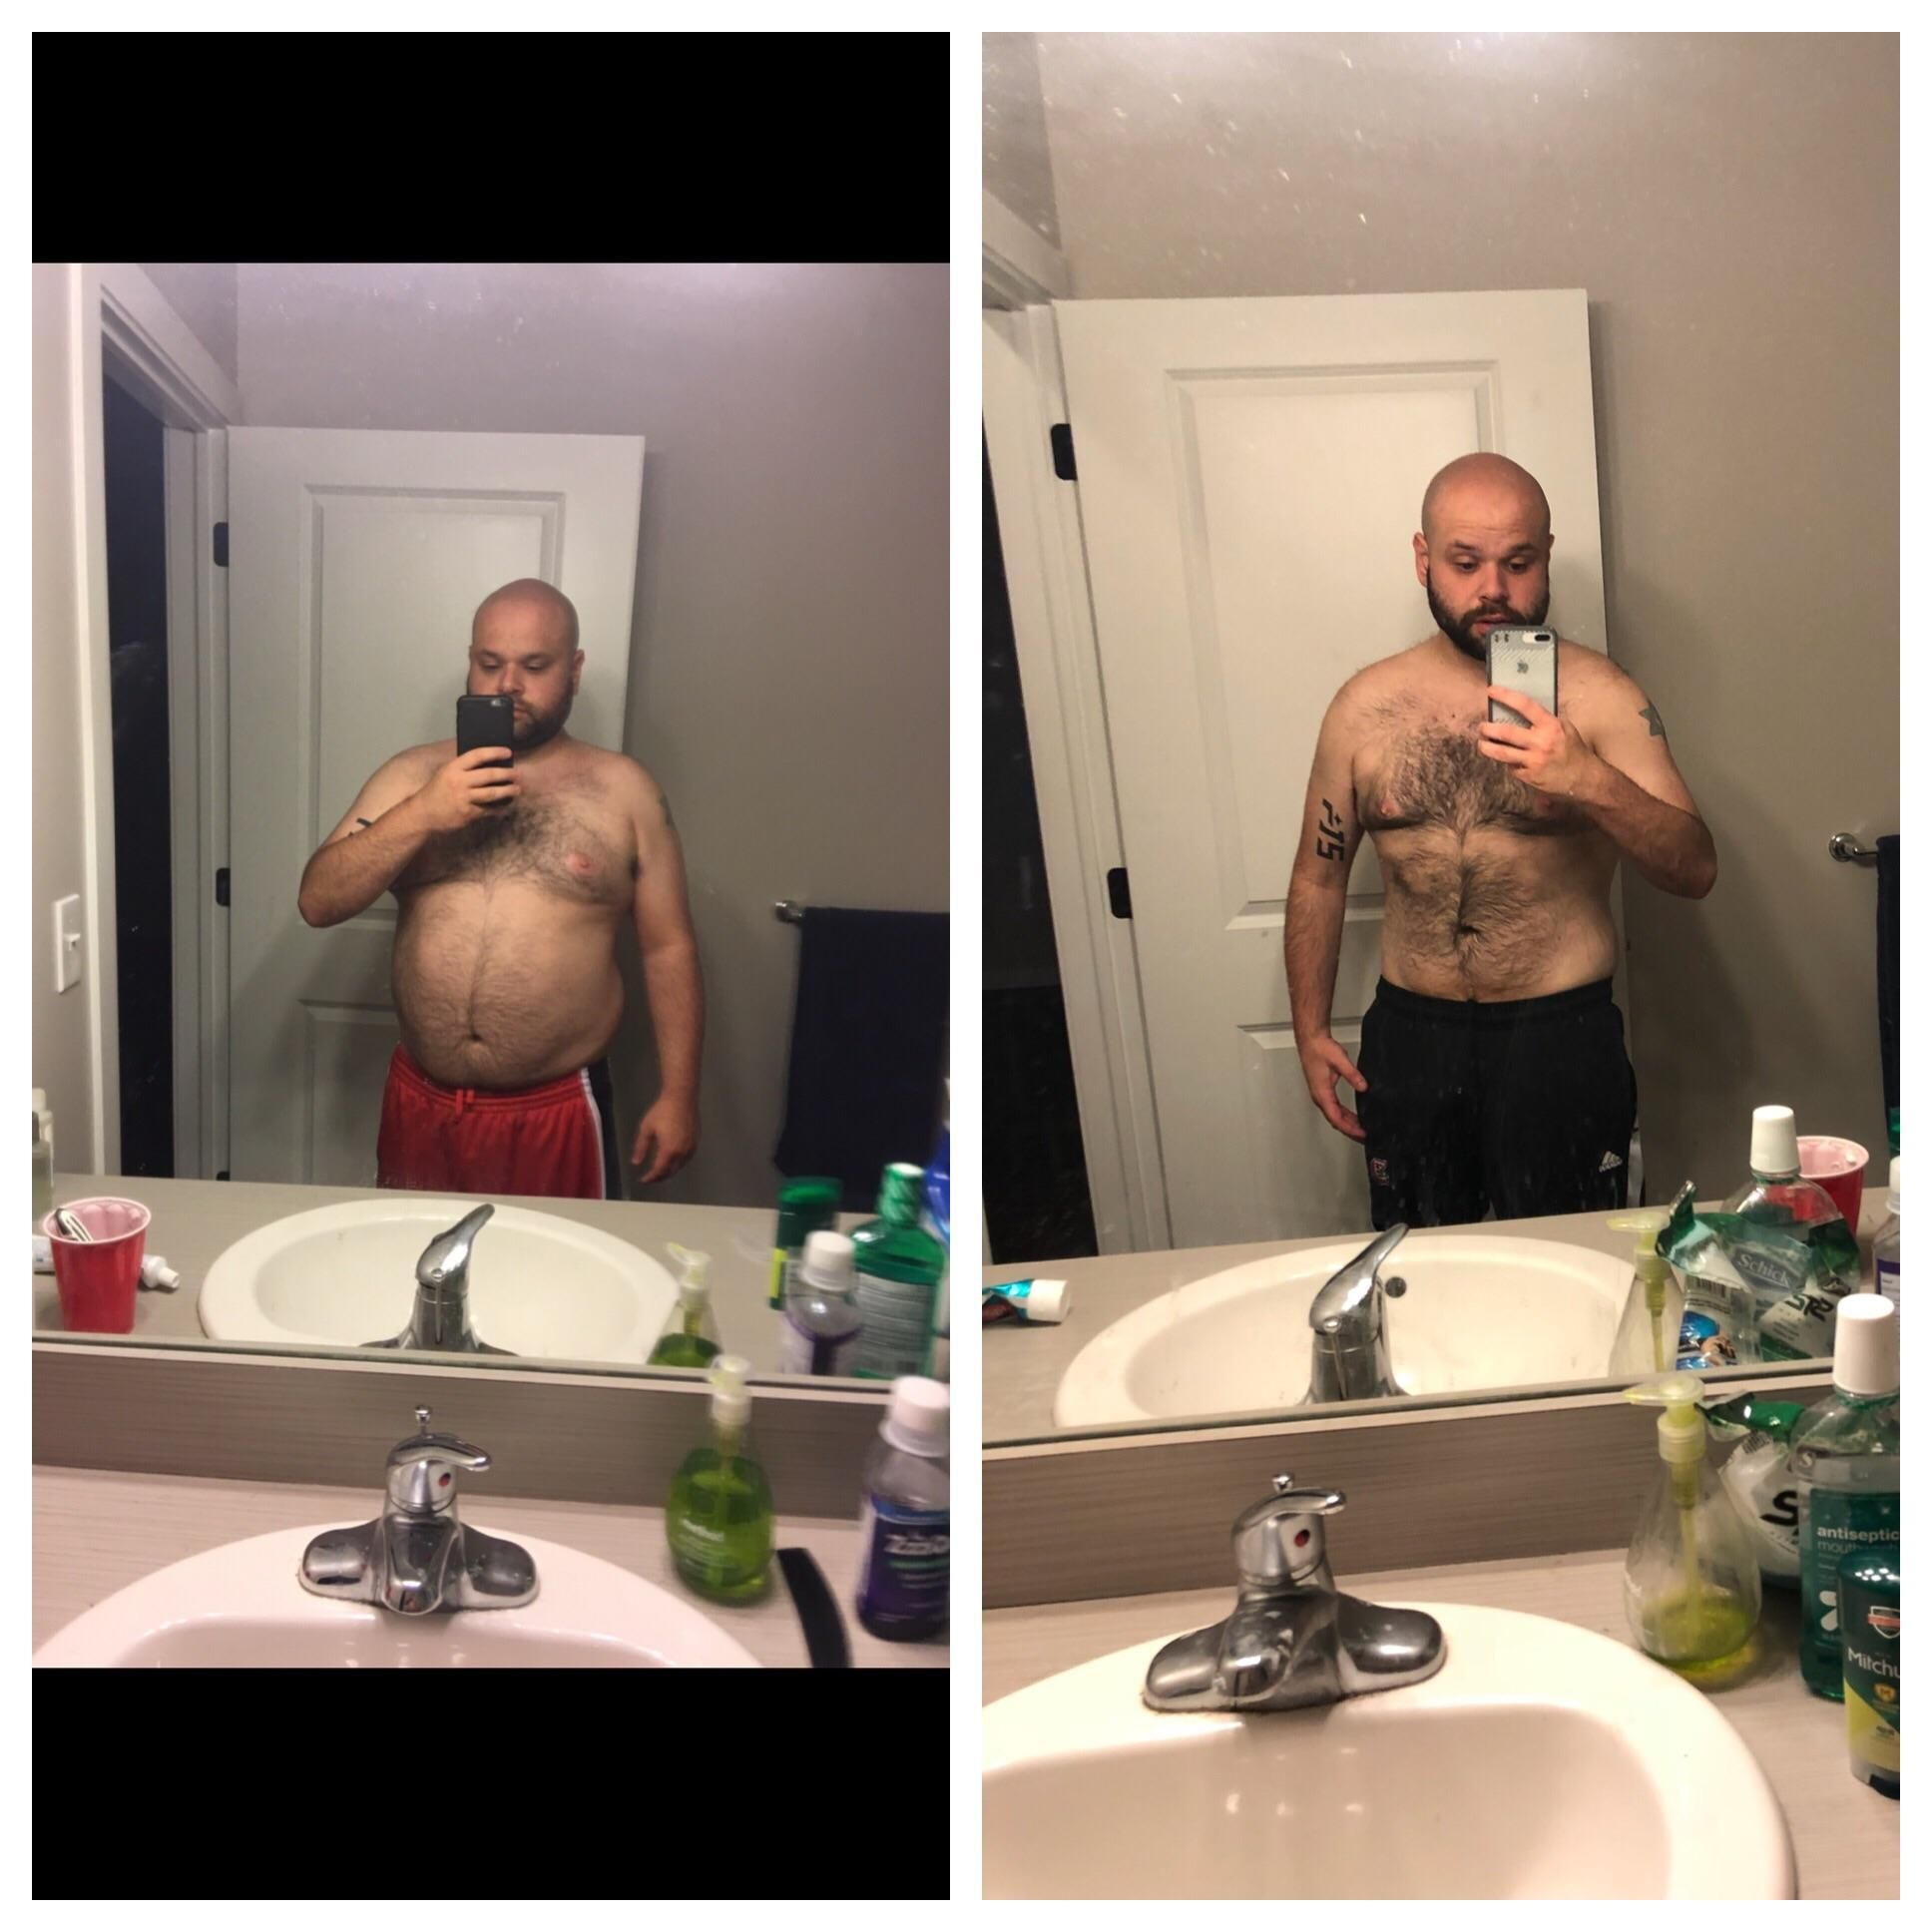 M/29/510 [250>180=70 lbs] (4 1/2 months) Feeling the best